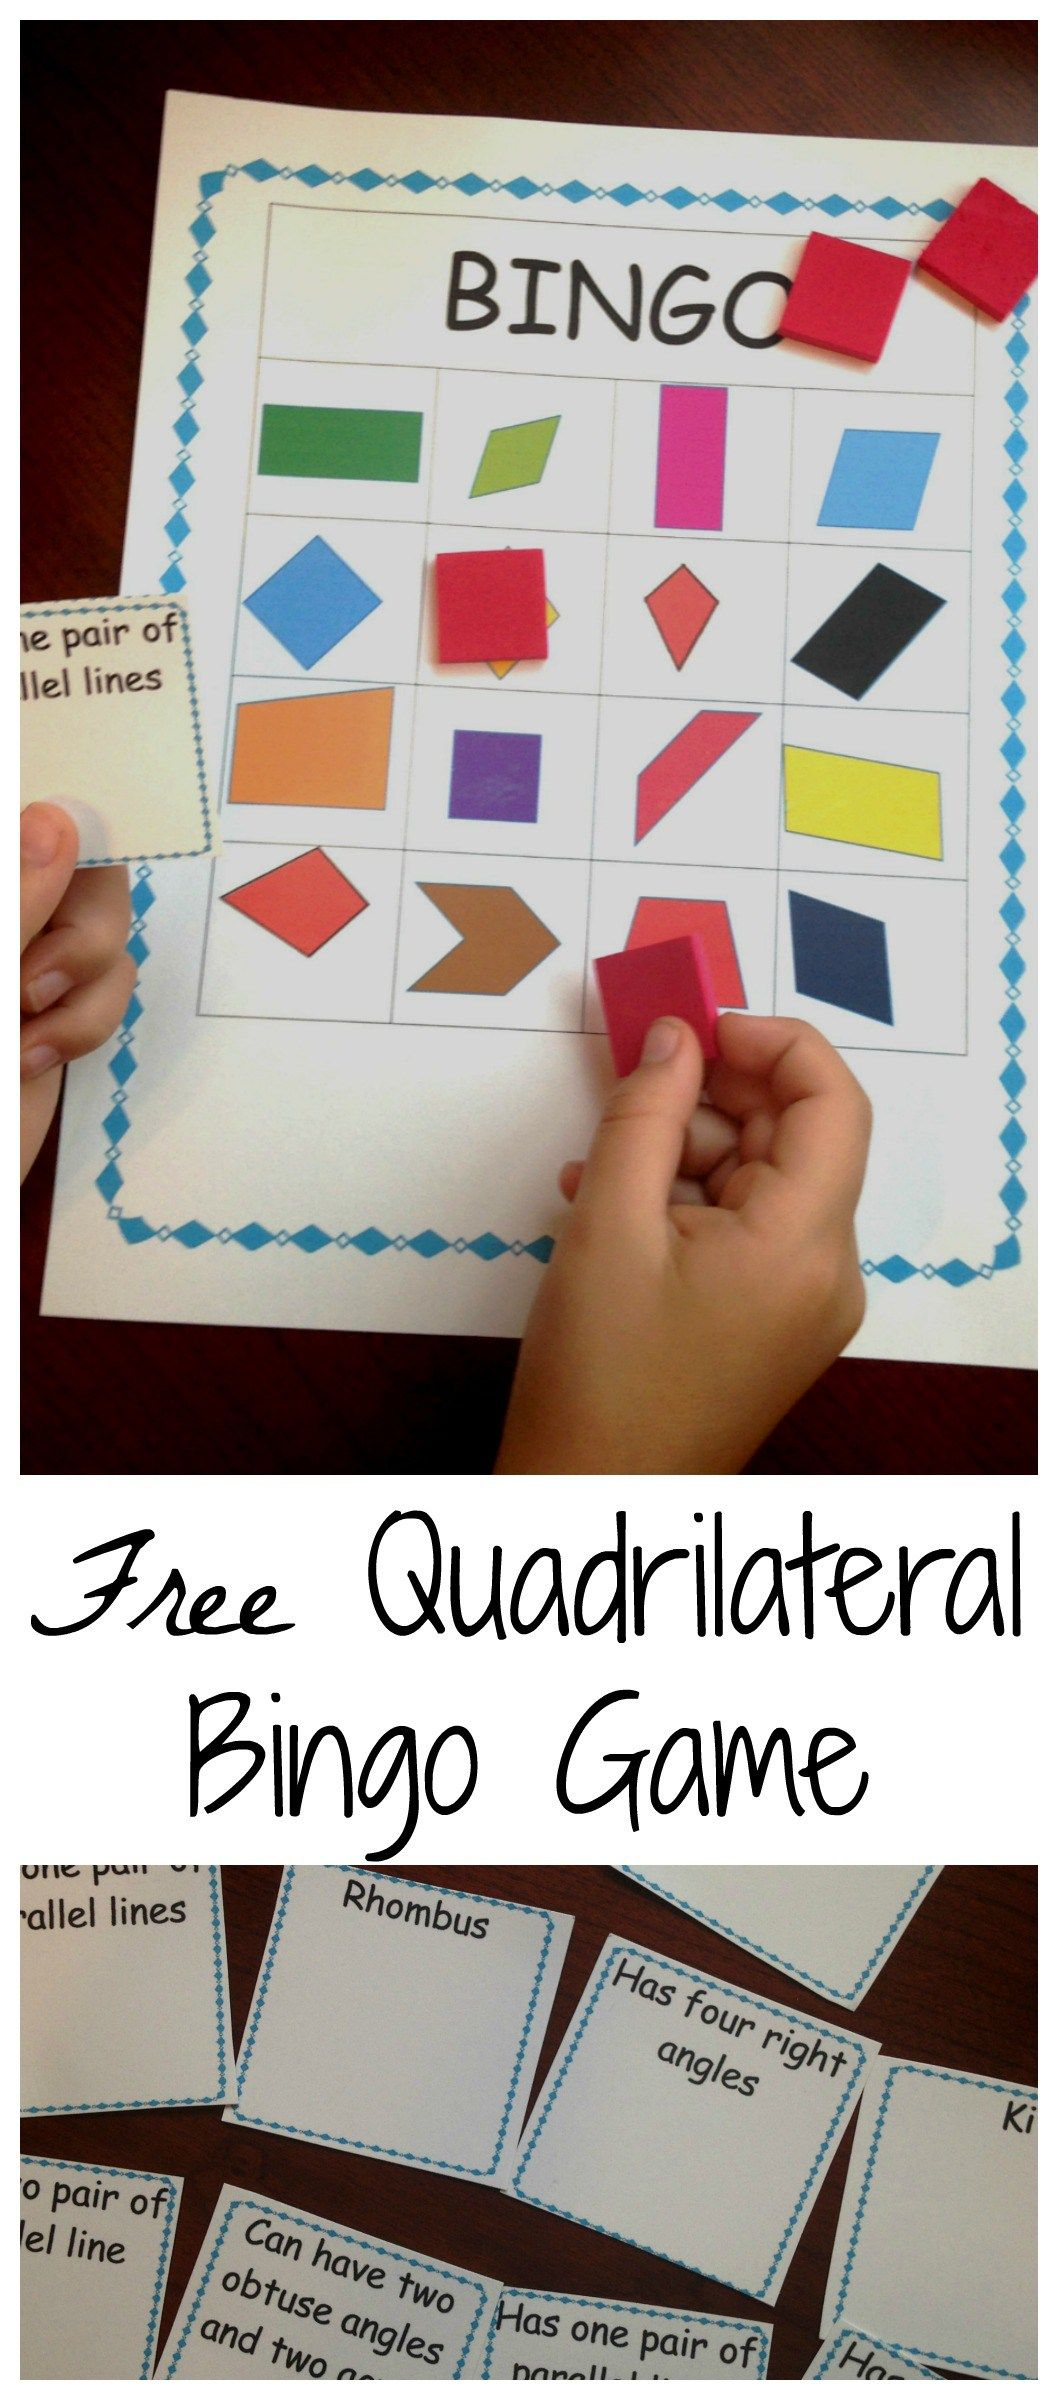 How To Review Classifying Quadrilaterals With This Free Quadrilateral Bingo Game With Images Math Expressions Teaching Quadrilaterals Quadrilaterals